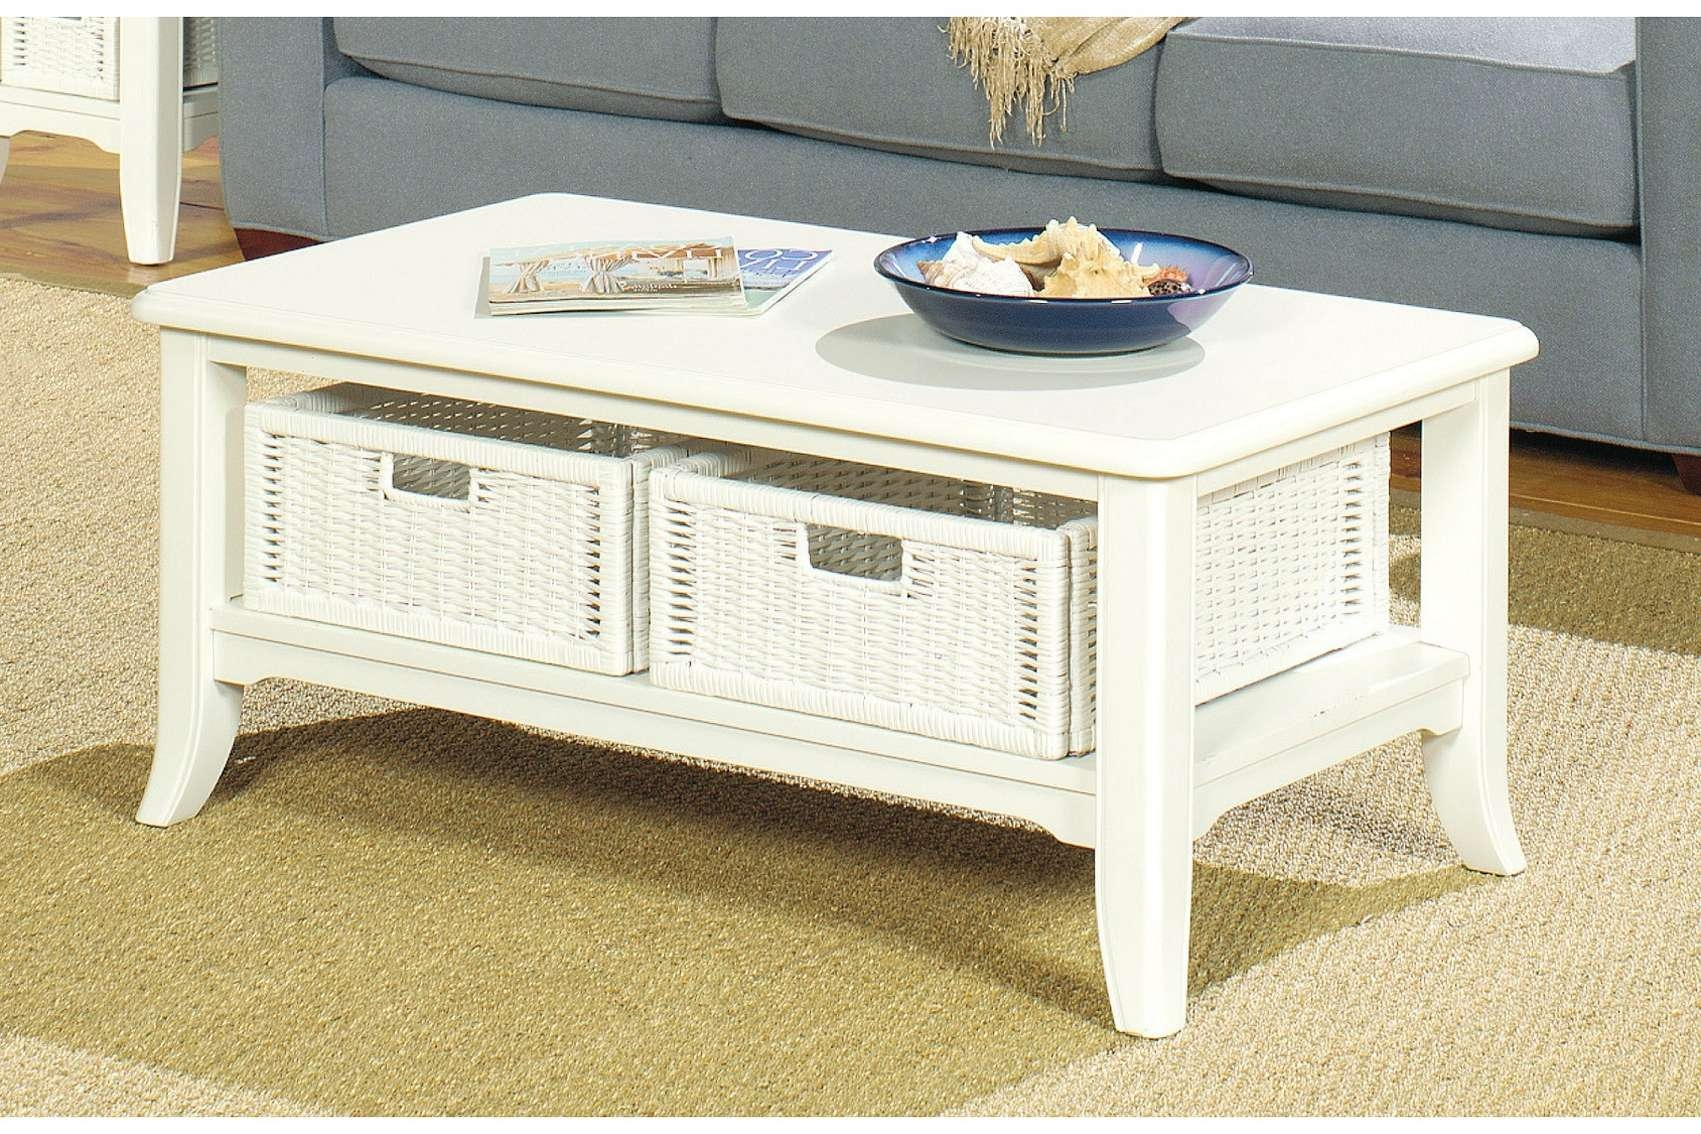 Coffee Table : Wood Coffee Table Square Side Table Designer End Within Favorite Cream Coffee Tables With Drawers (View 2 of 20)